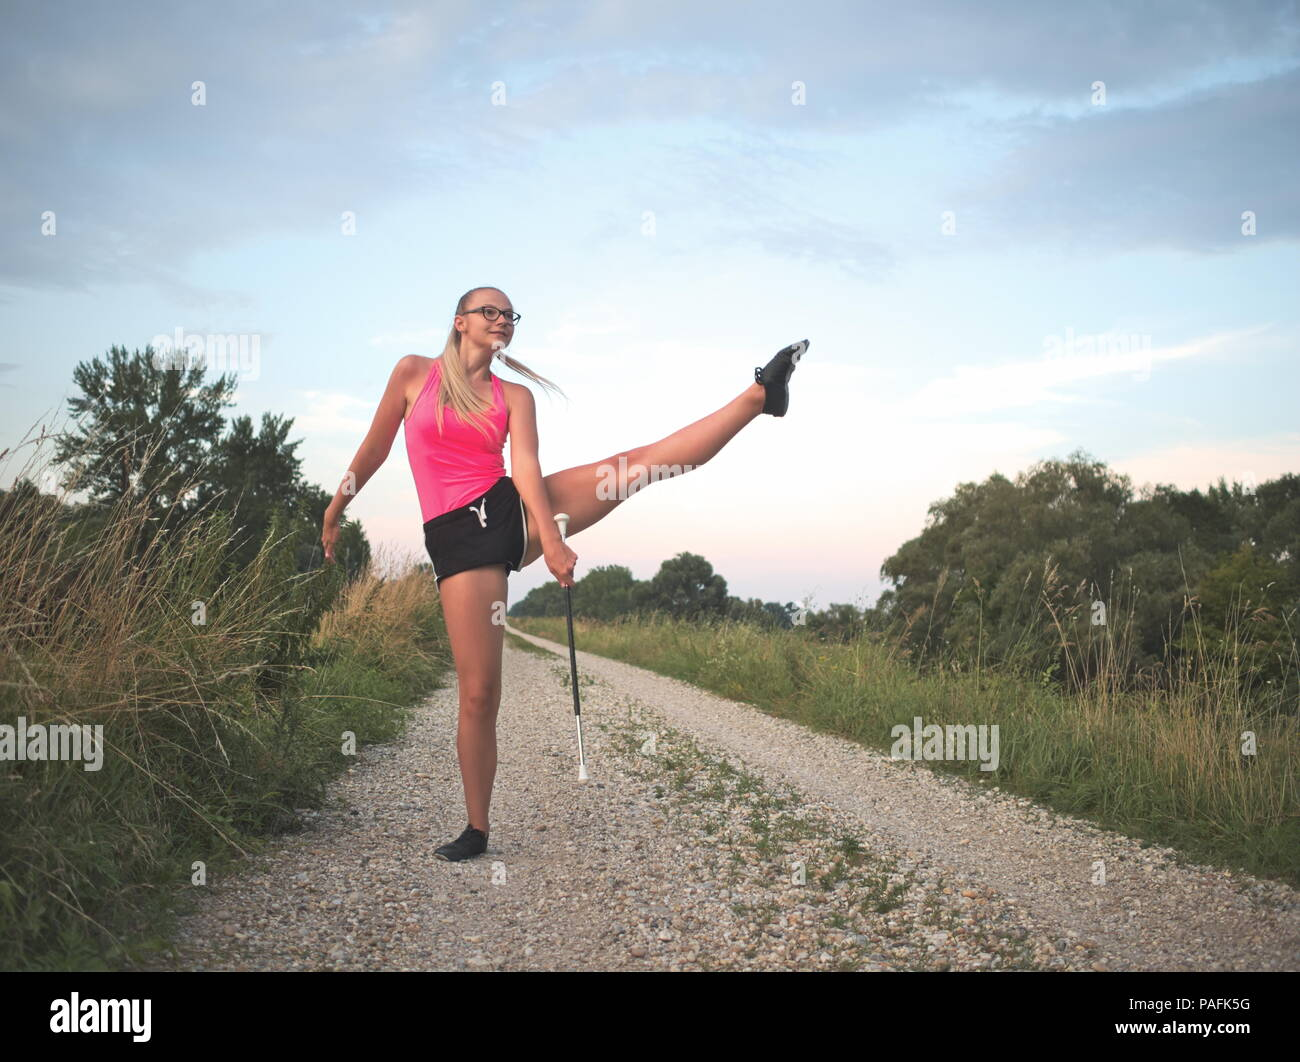 Bespectacled Blonde Teen Majorette Girl Twirling Baton Outdoors in Workout Clothing - Stock Image